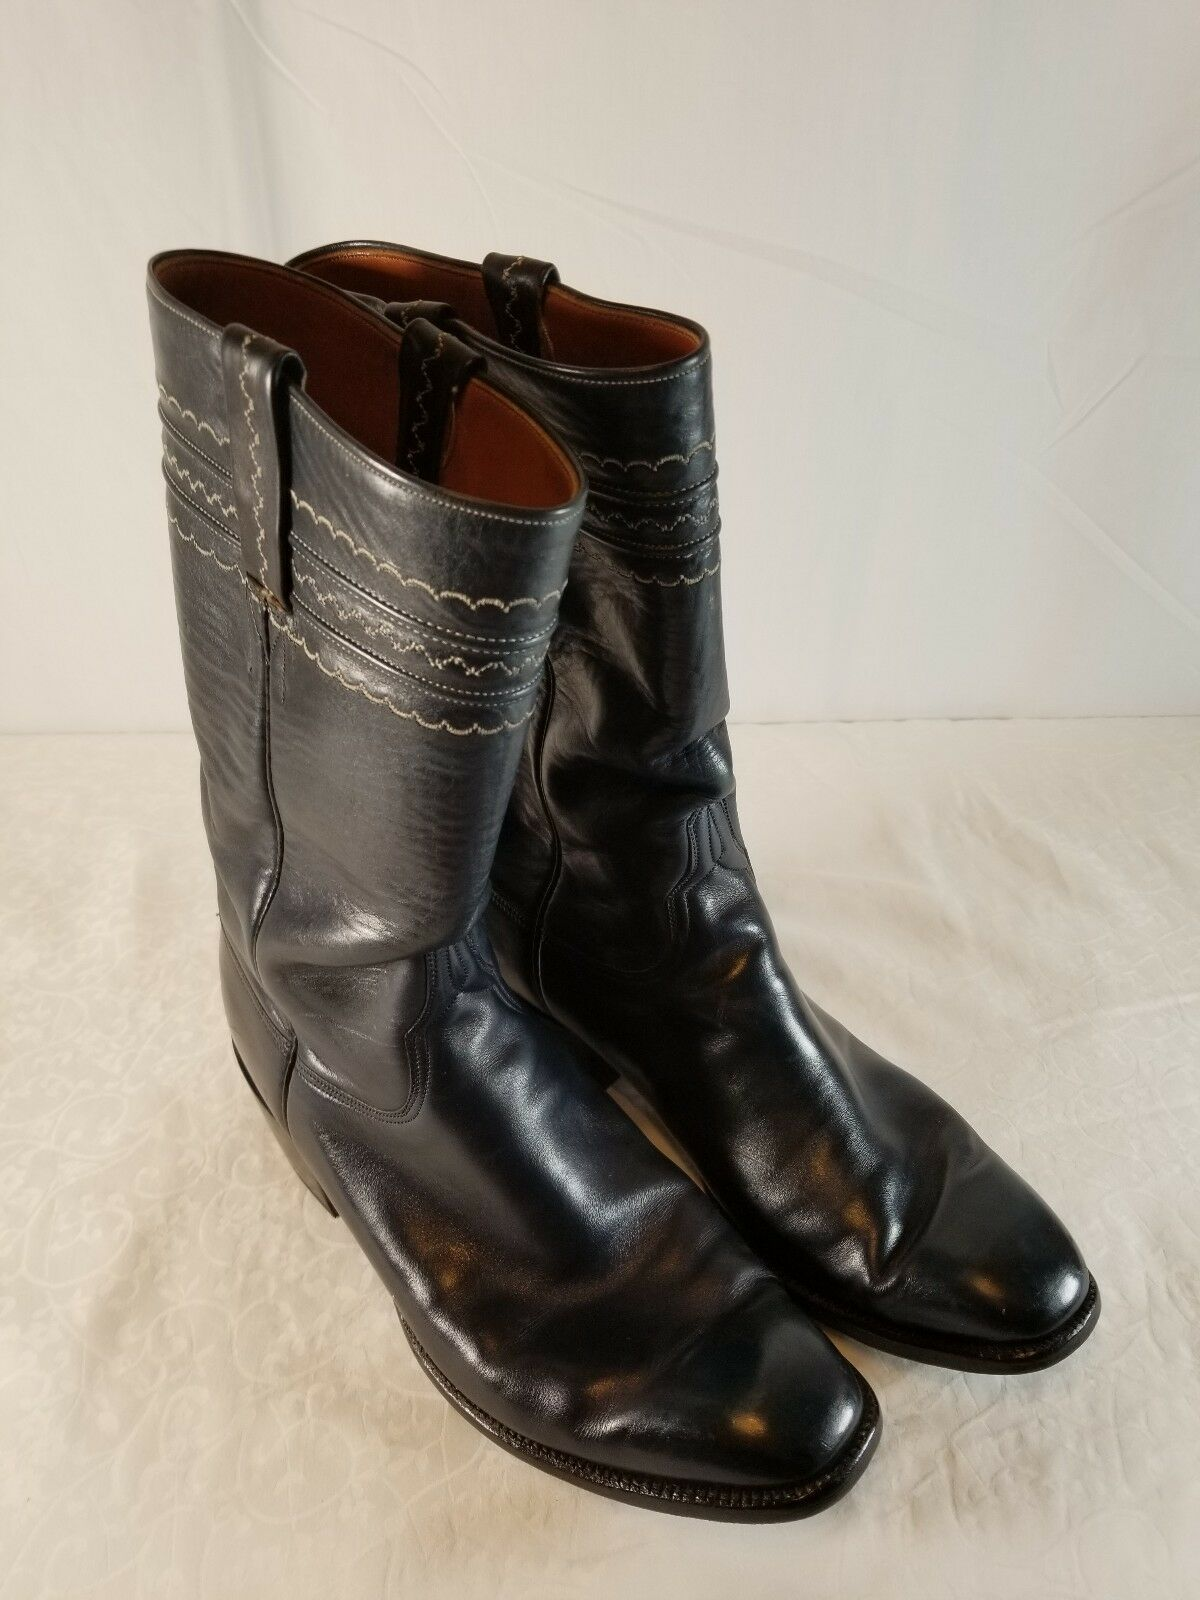 Lucchese Navy bluee Leather Cowboy Boots Mens Size 9.5 D EUC